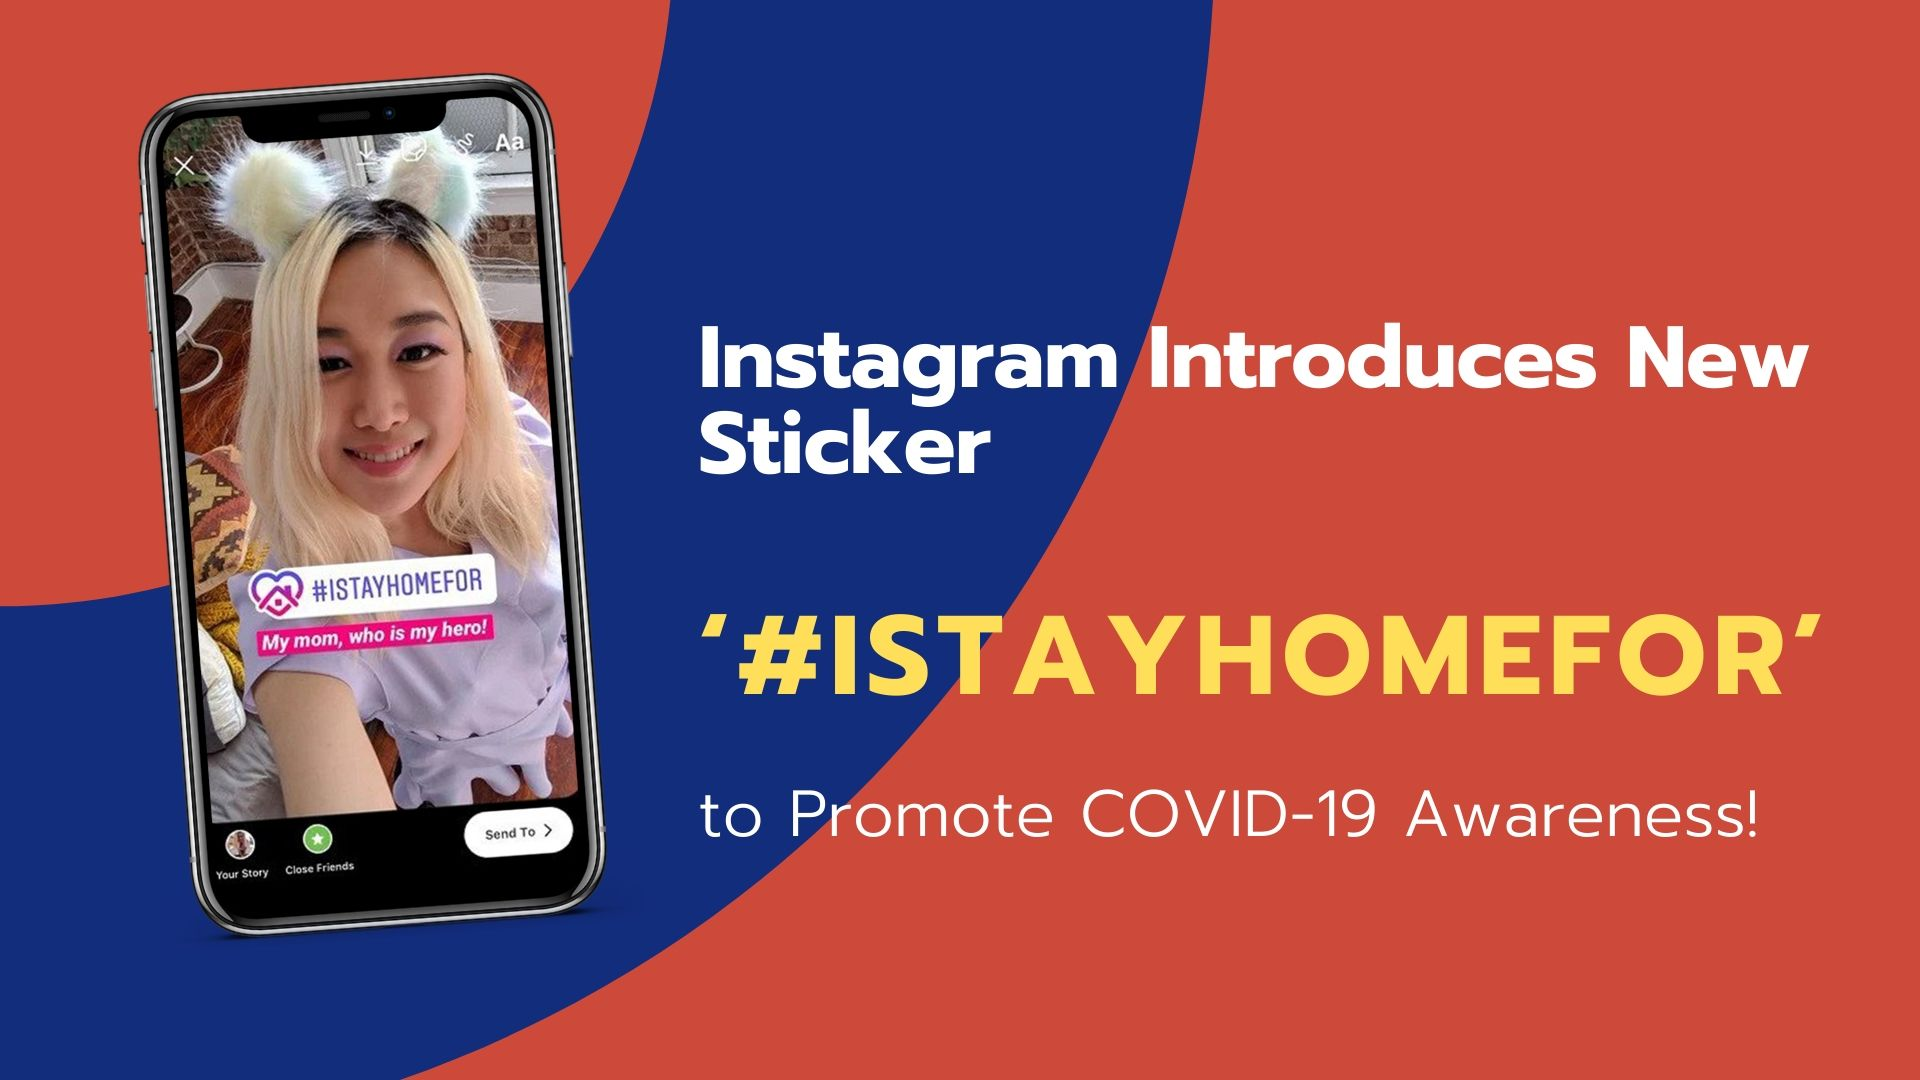 Instagram Introduces New Sticker 'ISTAYHOMEFOR' to Promote COVID-19